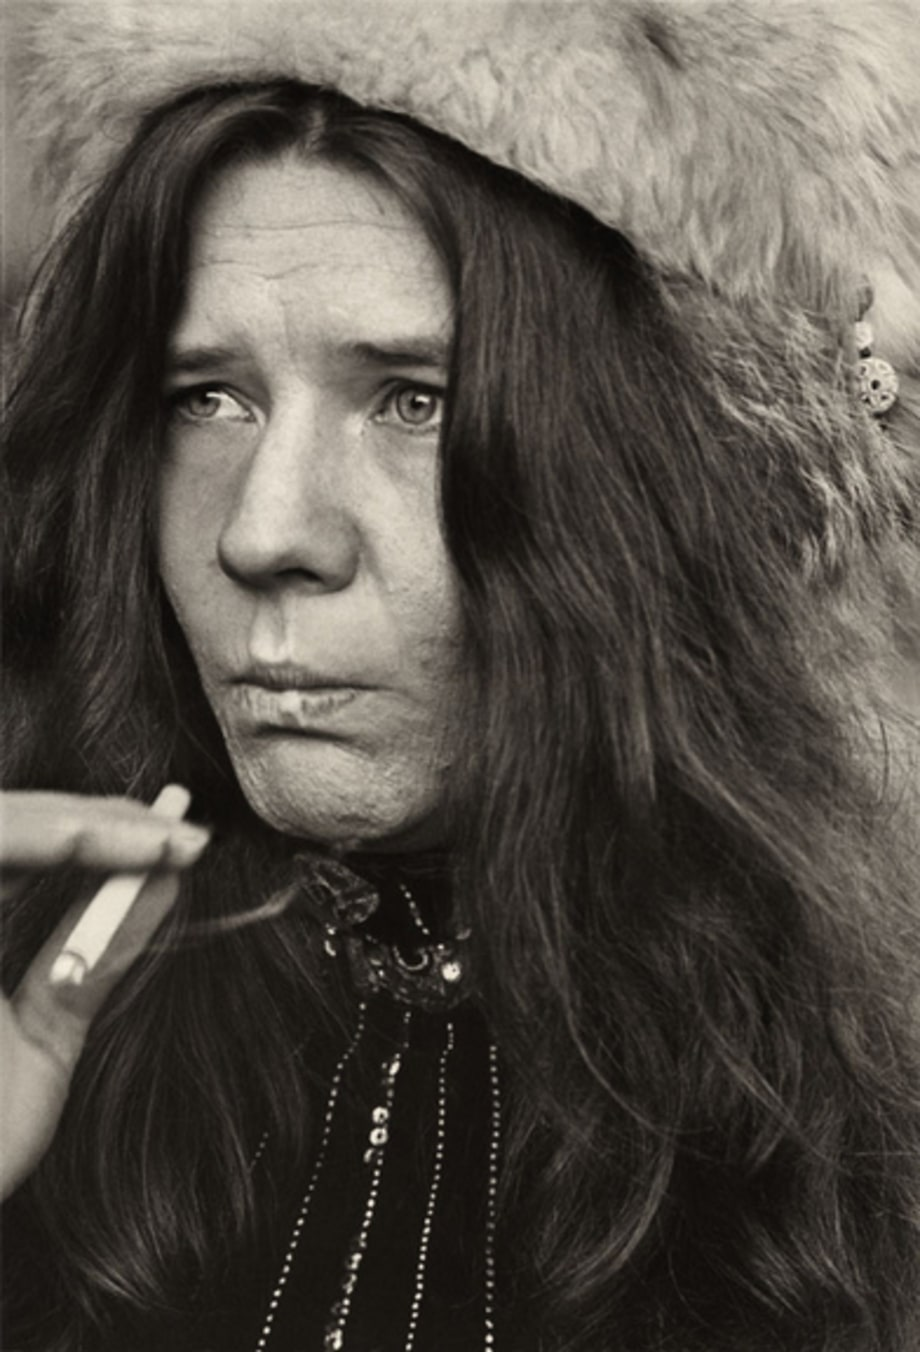 Linda McCartney Photographs: Janis Joplin - 1967